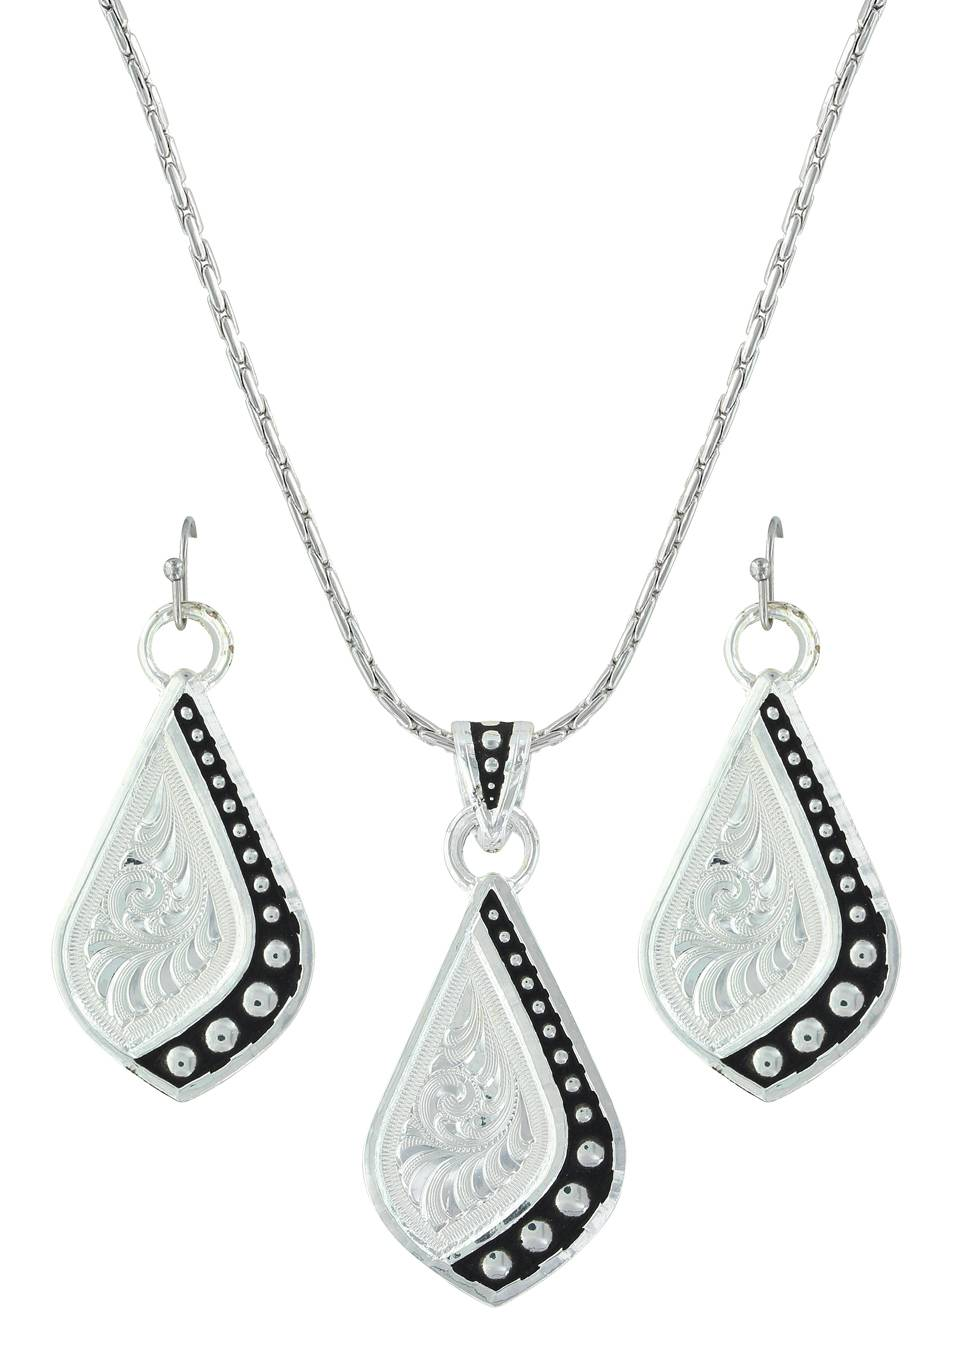 Montana Silversmiths The Path I Take Jewelry Set